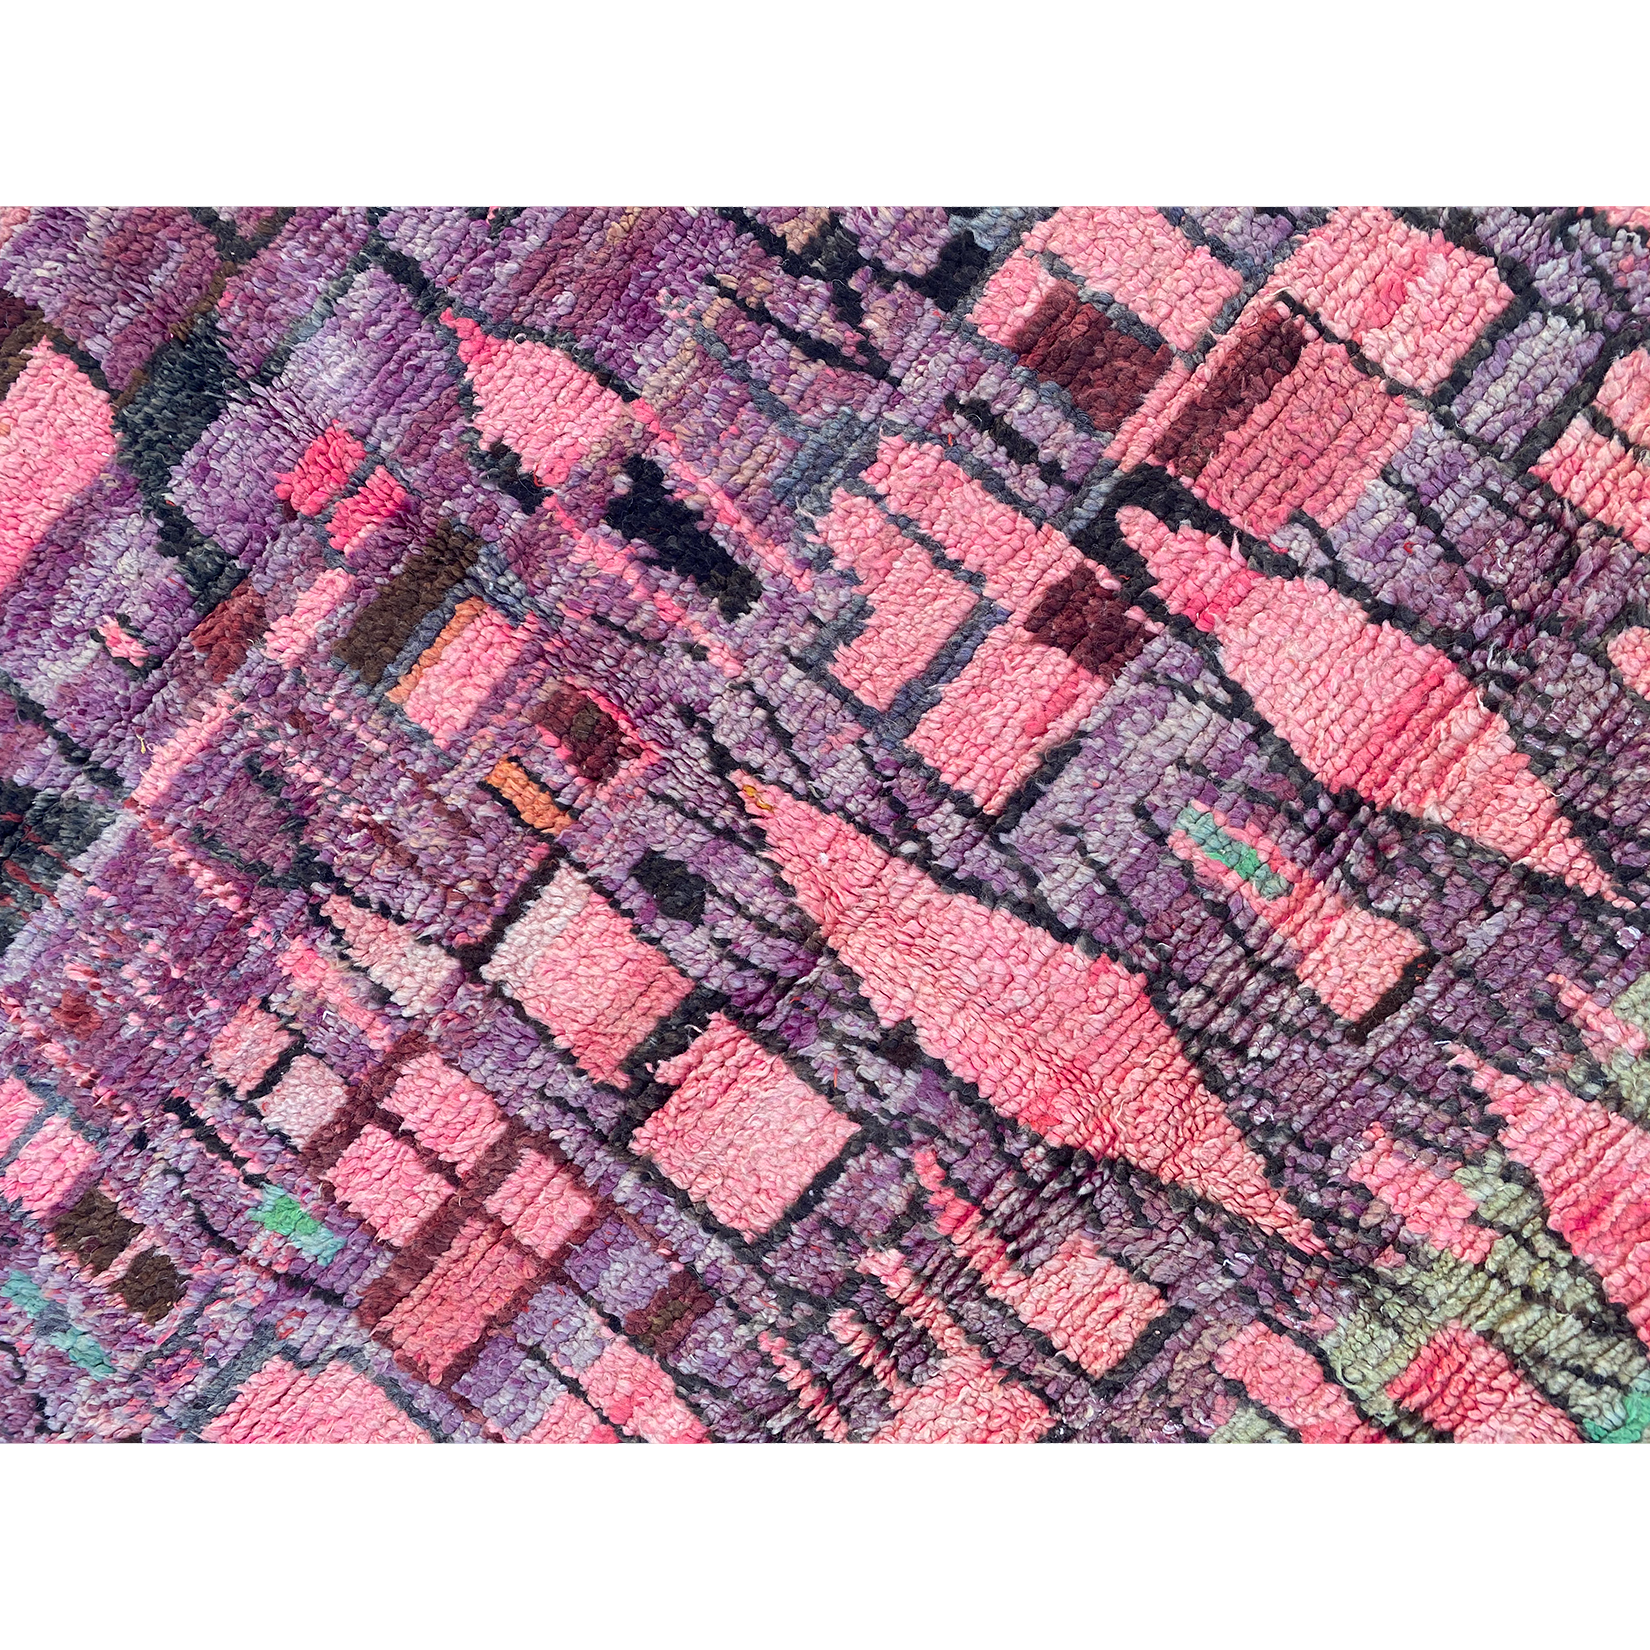 Lively Moroccan rug with abstract pattern design - Kantara | Moroccan Rugs